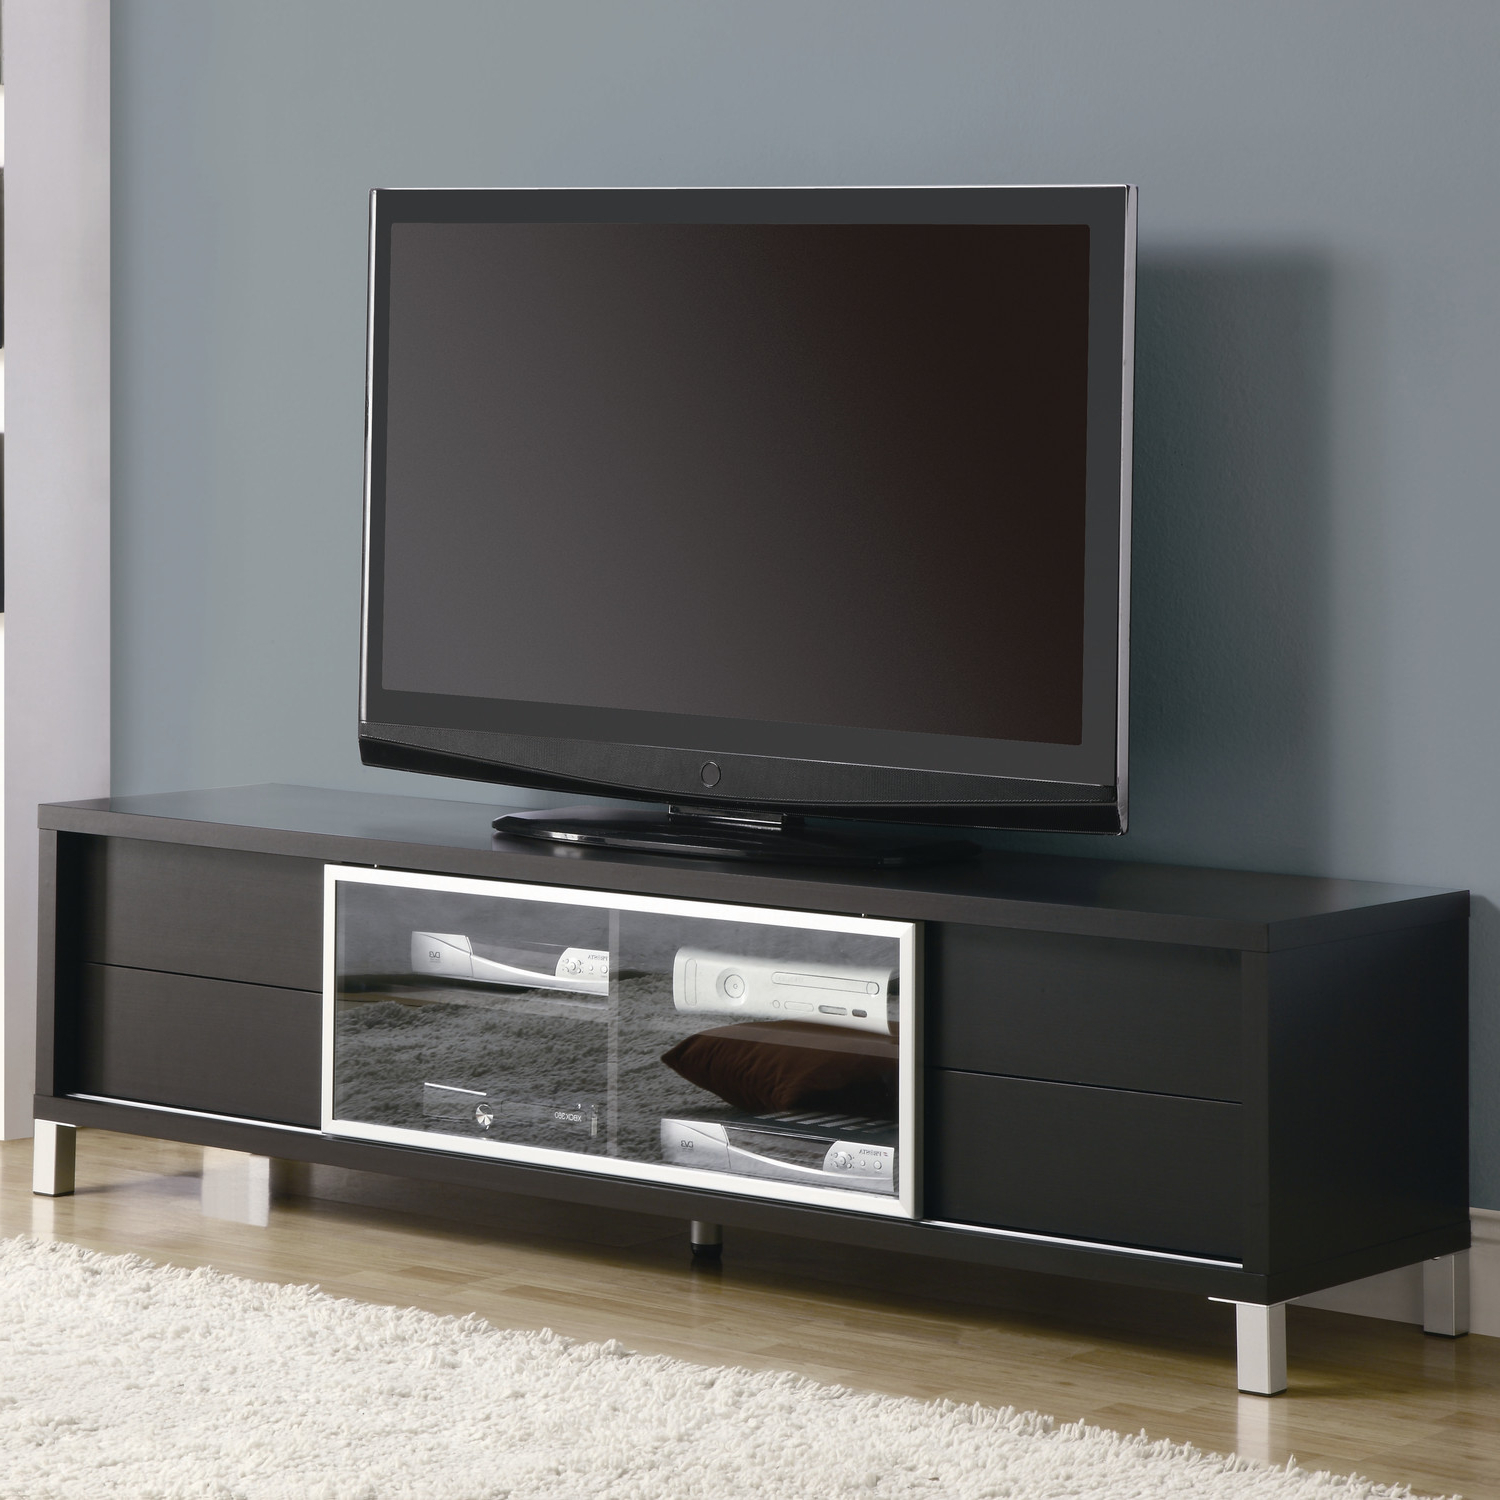 Fashionable Tv Stands Costco Modern Unit Design Ideas Consoles Ikea Stand 55 Regarding Luxury Tv Stands (Gallery 4 of 20)